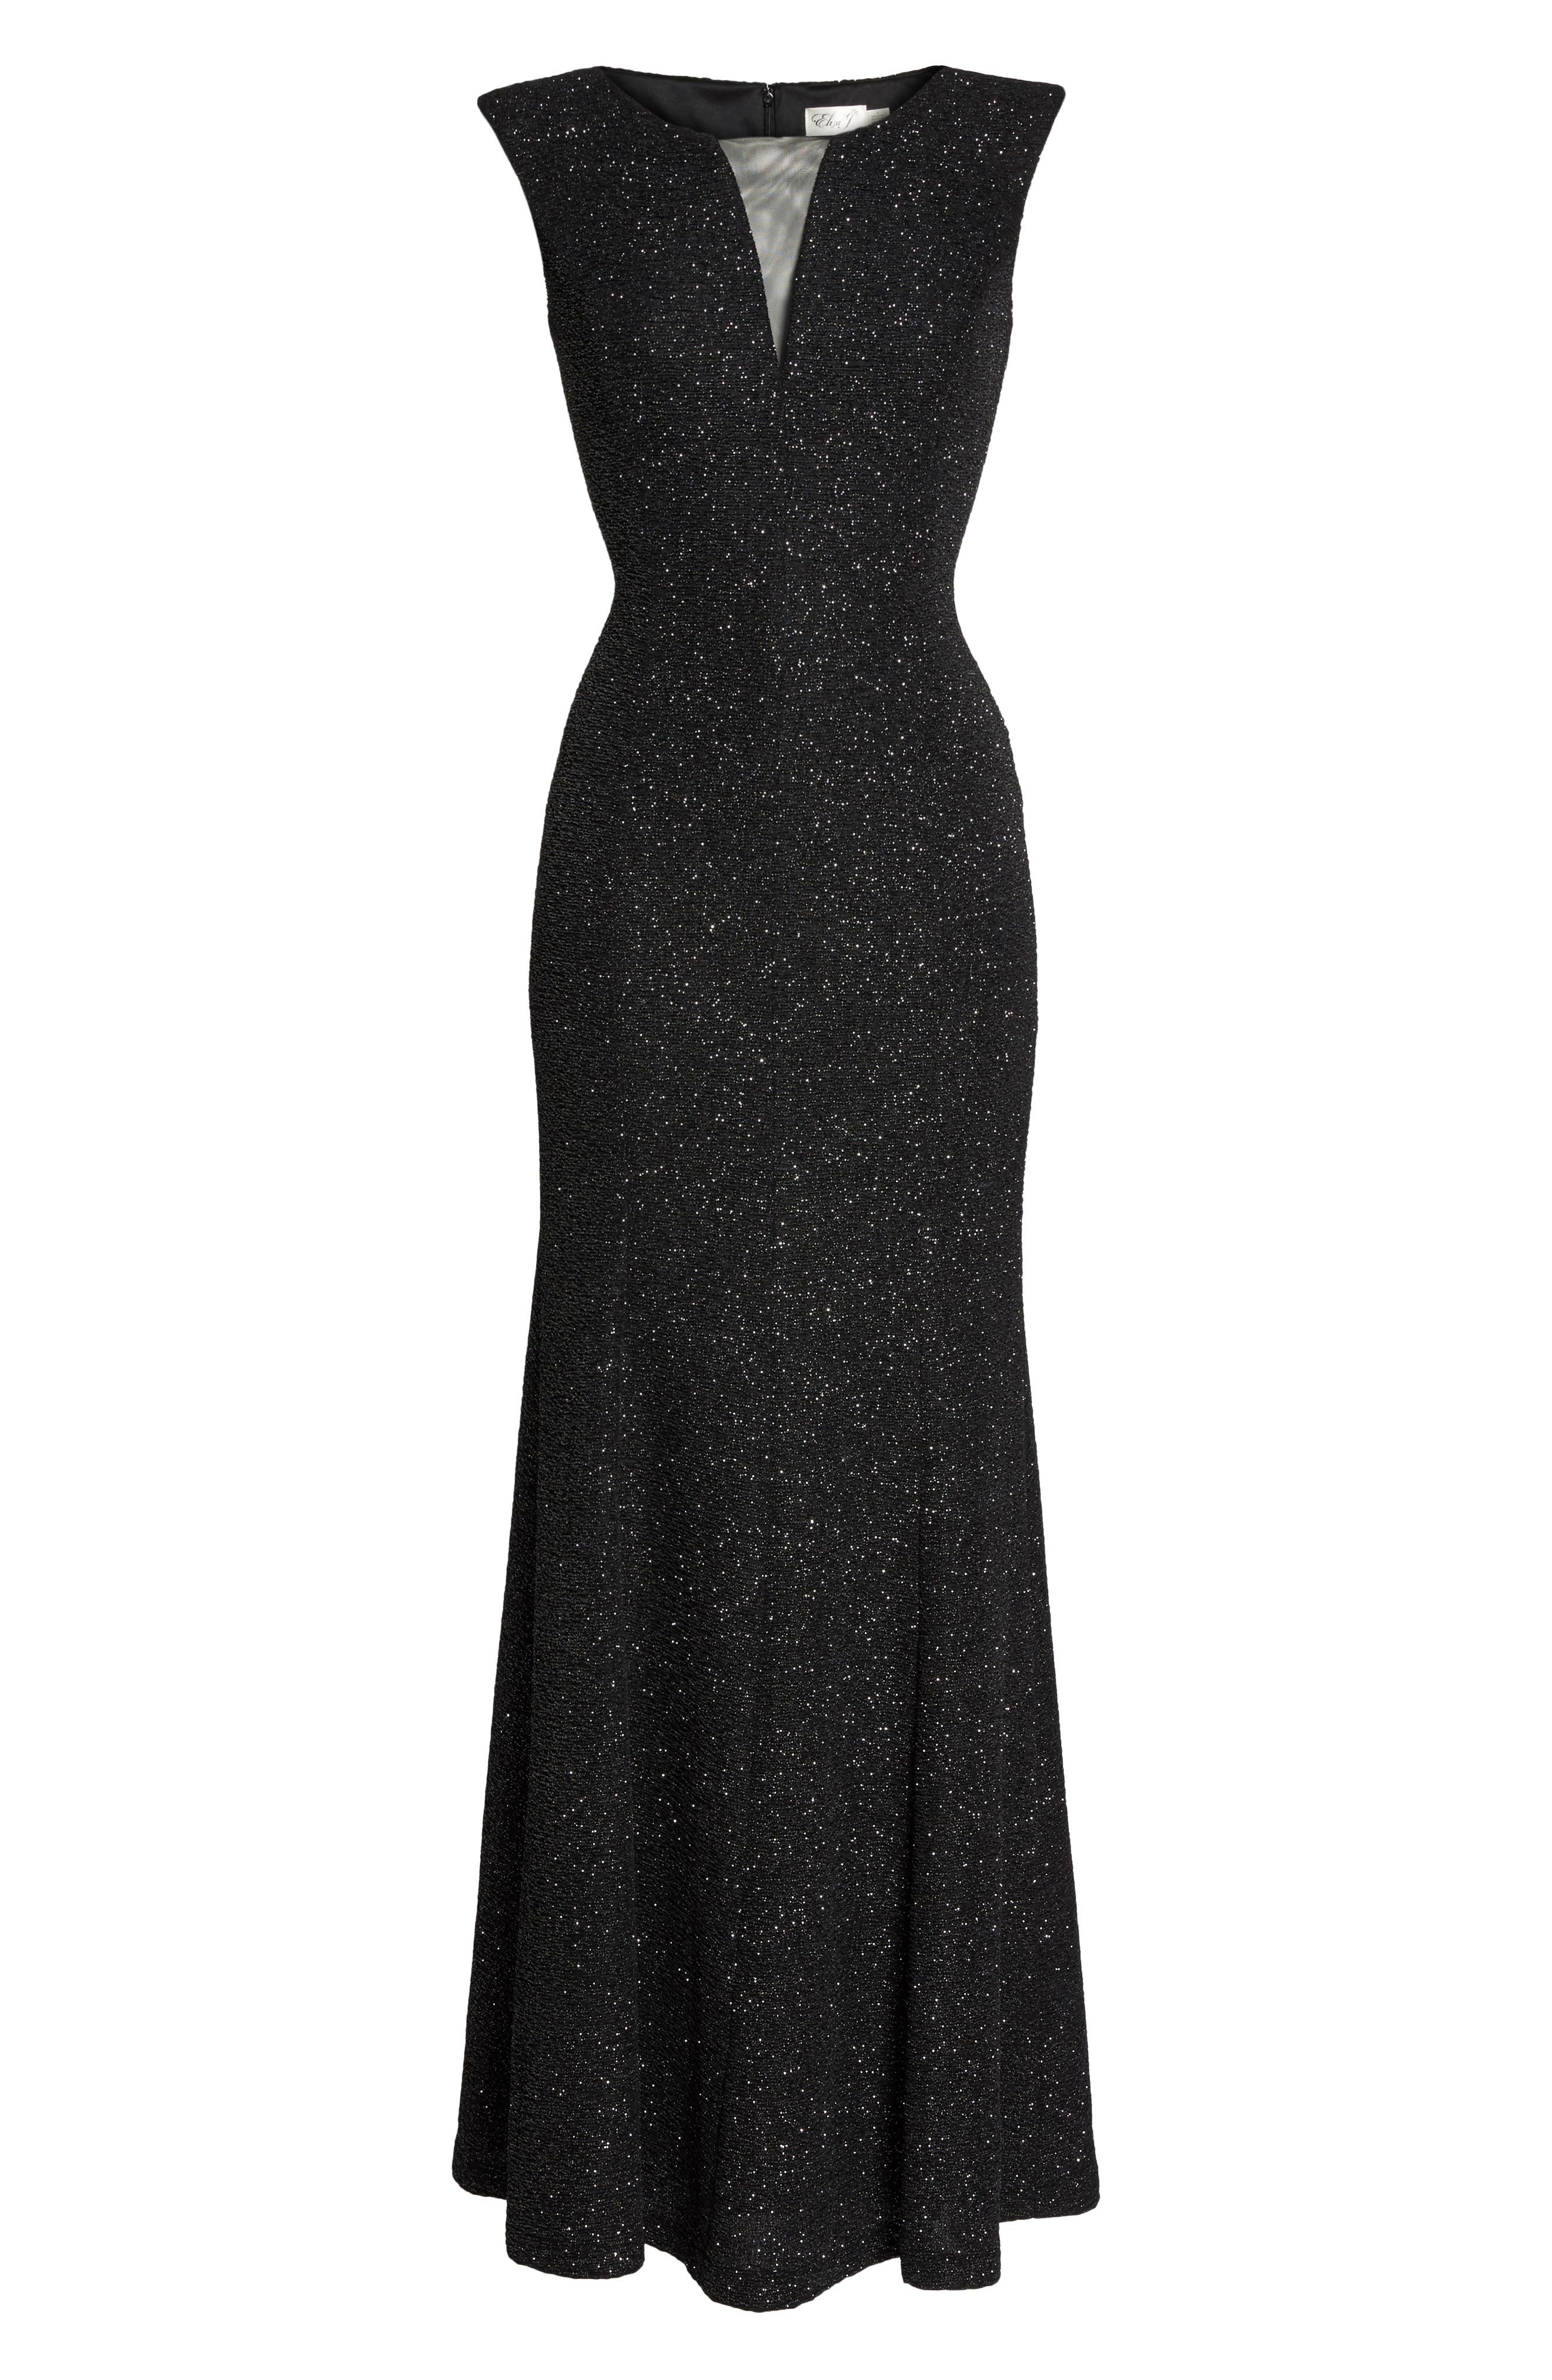 Glitter Knit Gown,                             Alternate thumbnail 6, color,                             Black/ Silver